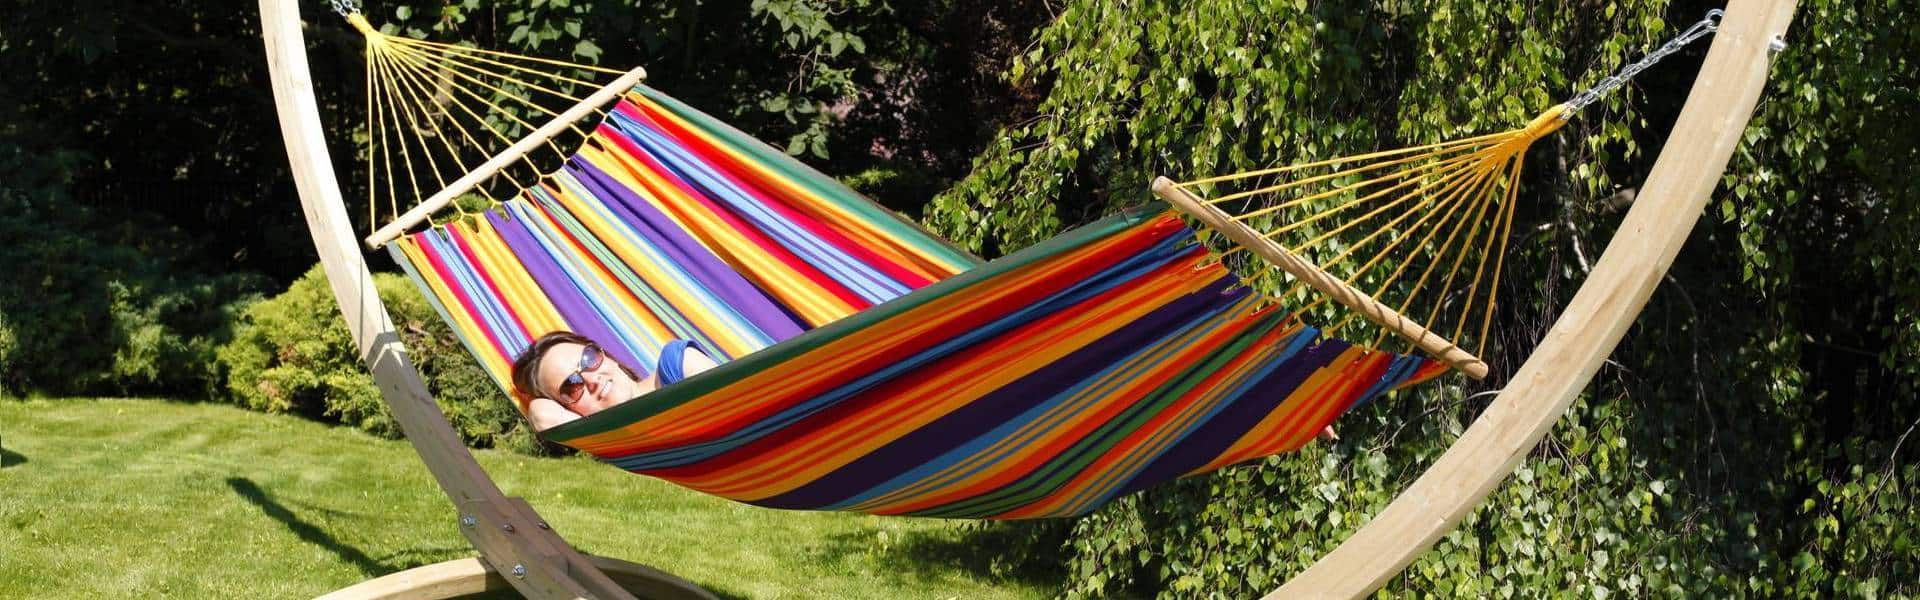 Best Hammock Chair 2019 – Buyer's Guide and Hammock Chair Reviews